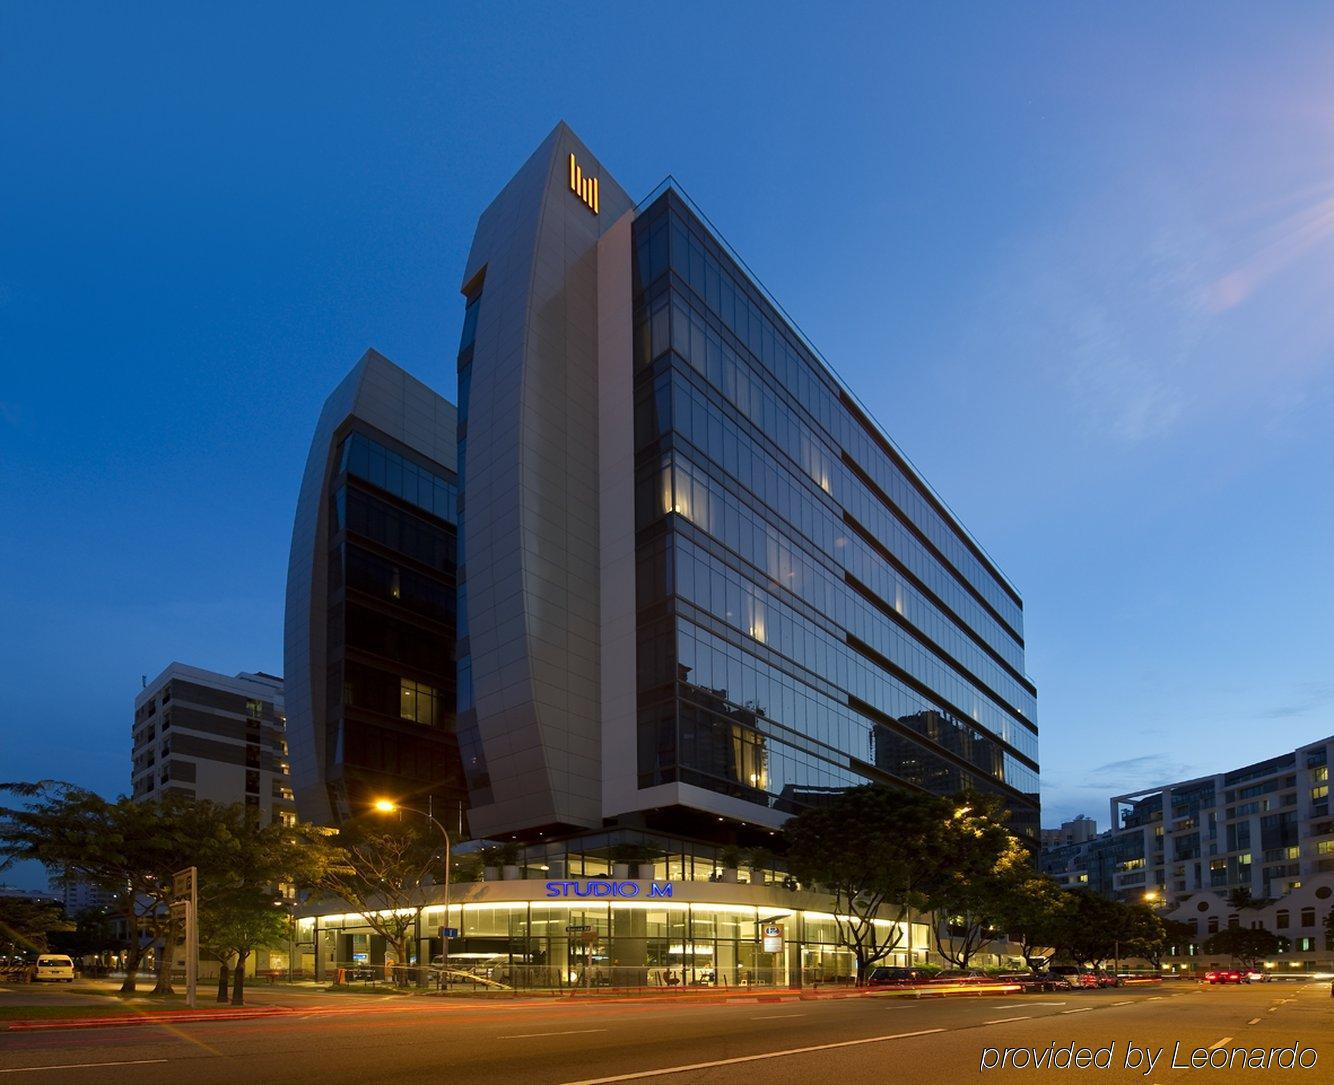 Best 5 Star Luxury Hotel Near Orchard Road, Singapore